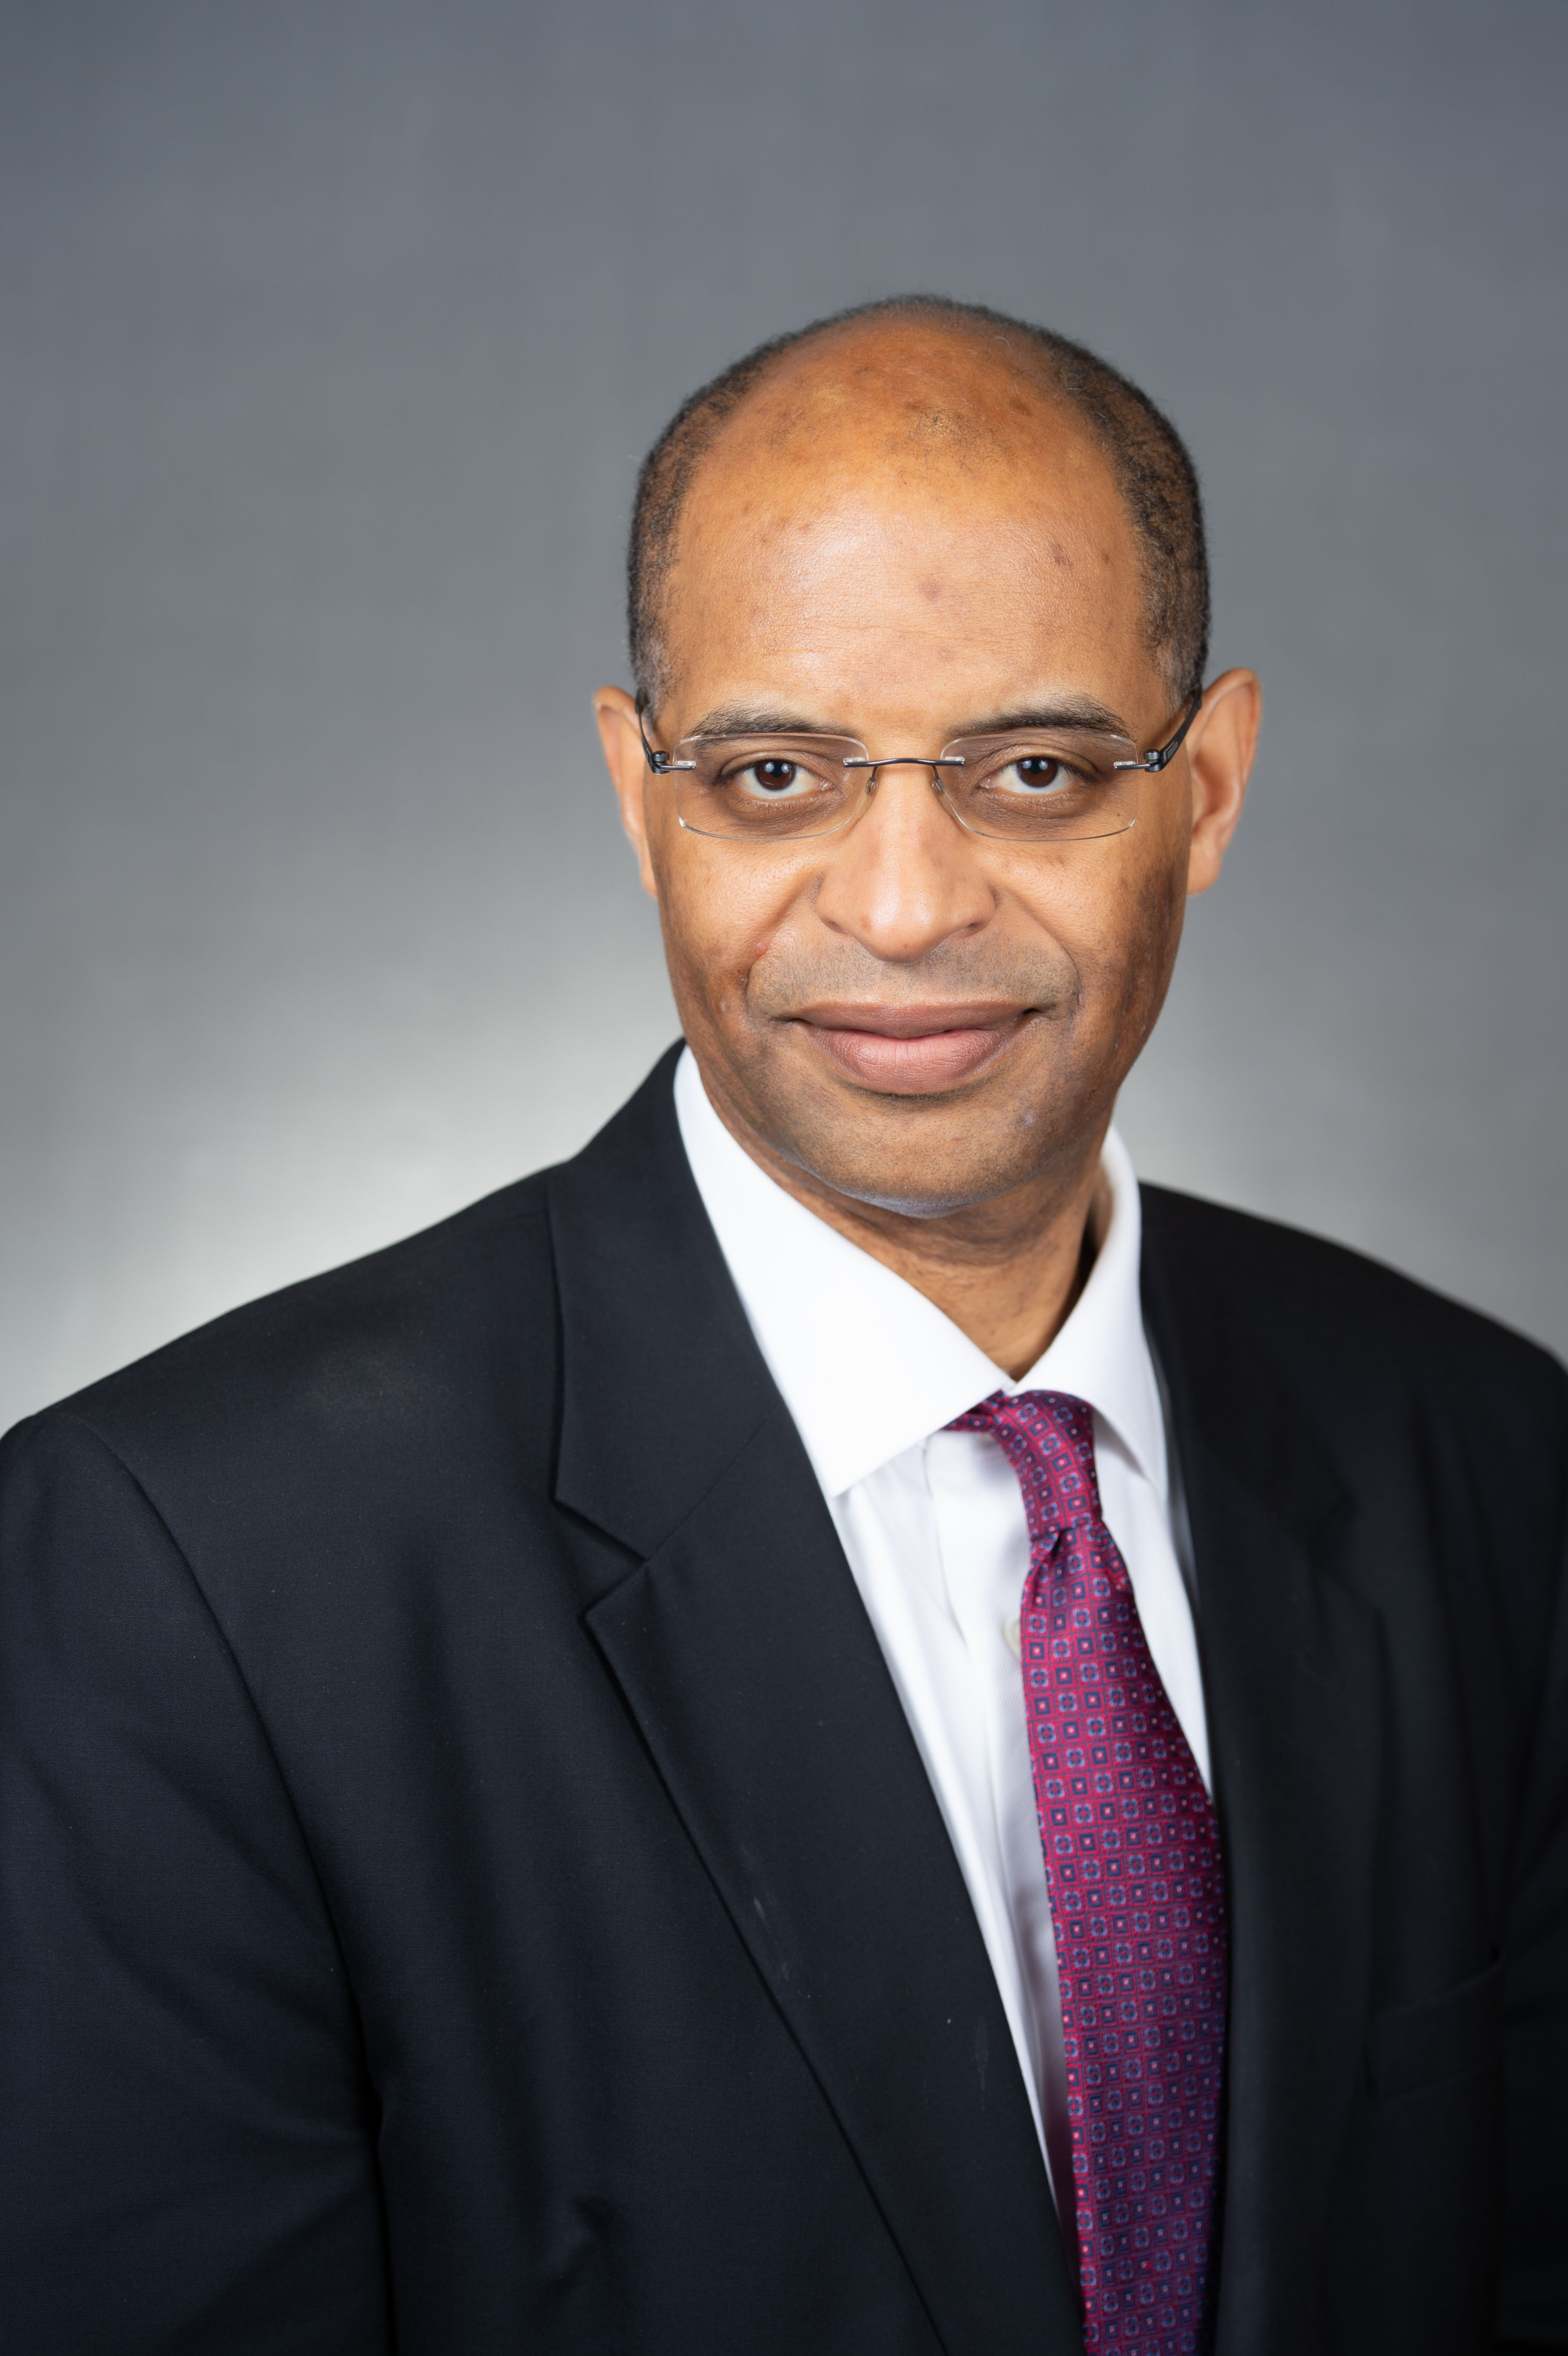 Headshot of Dr. John Carethers wearing a black suit and a blue tie